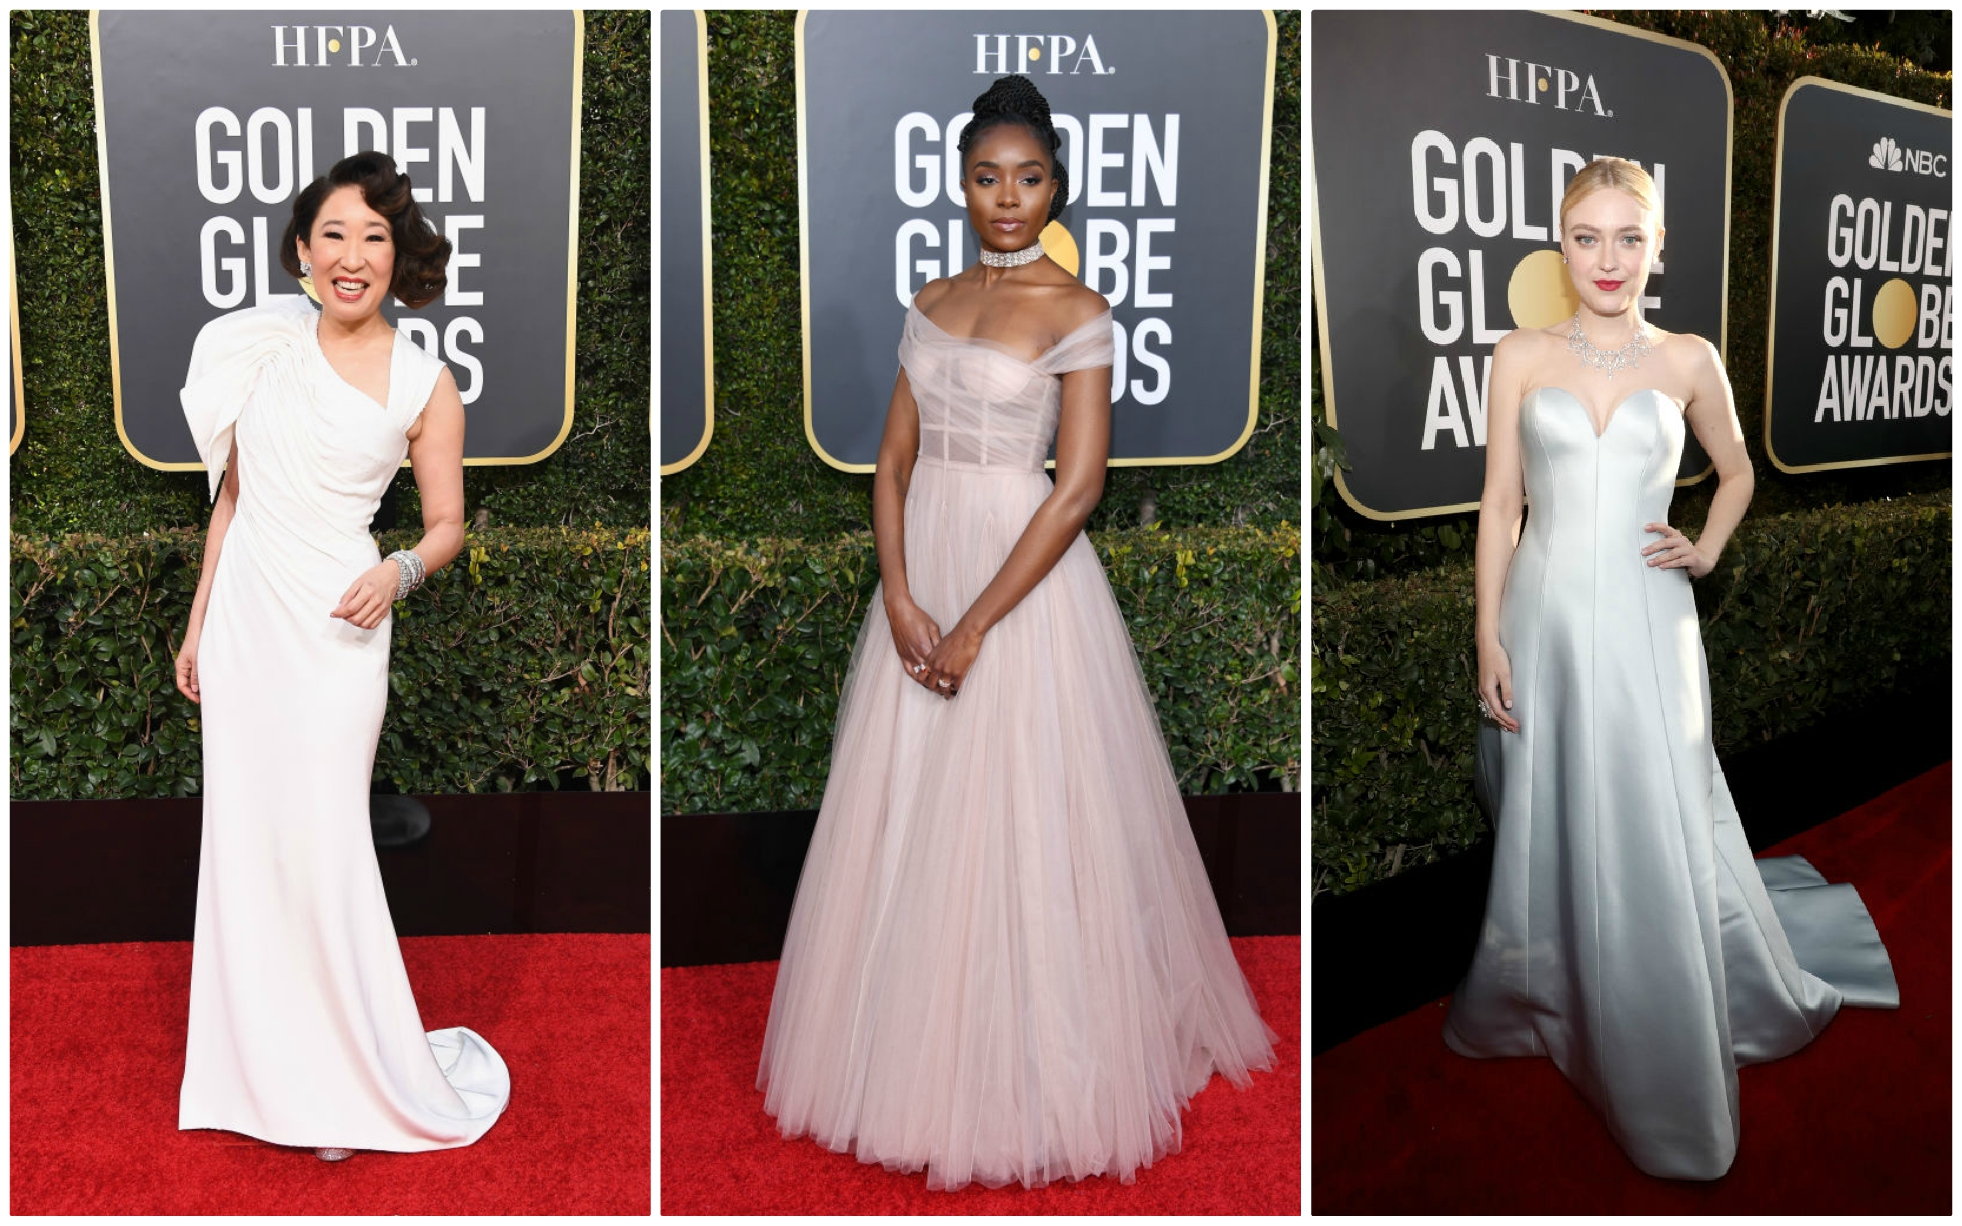 golden globes 2019 wedding dresses